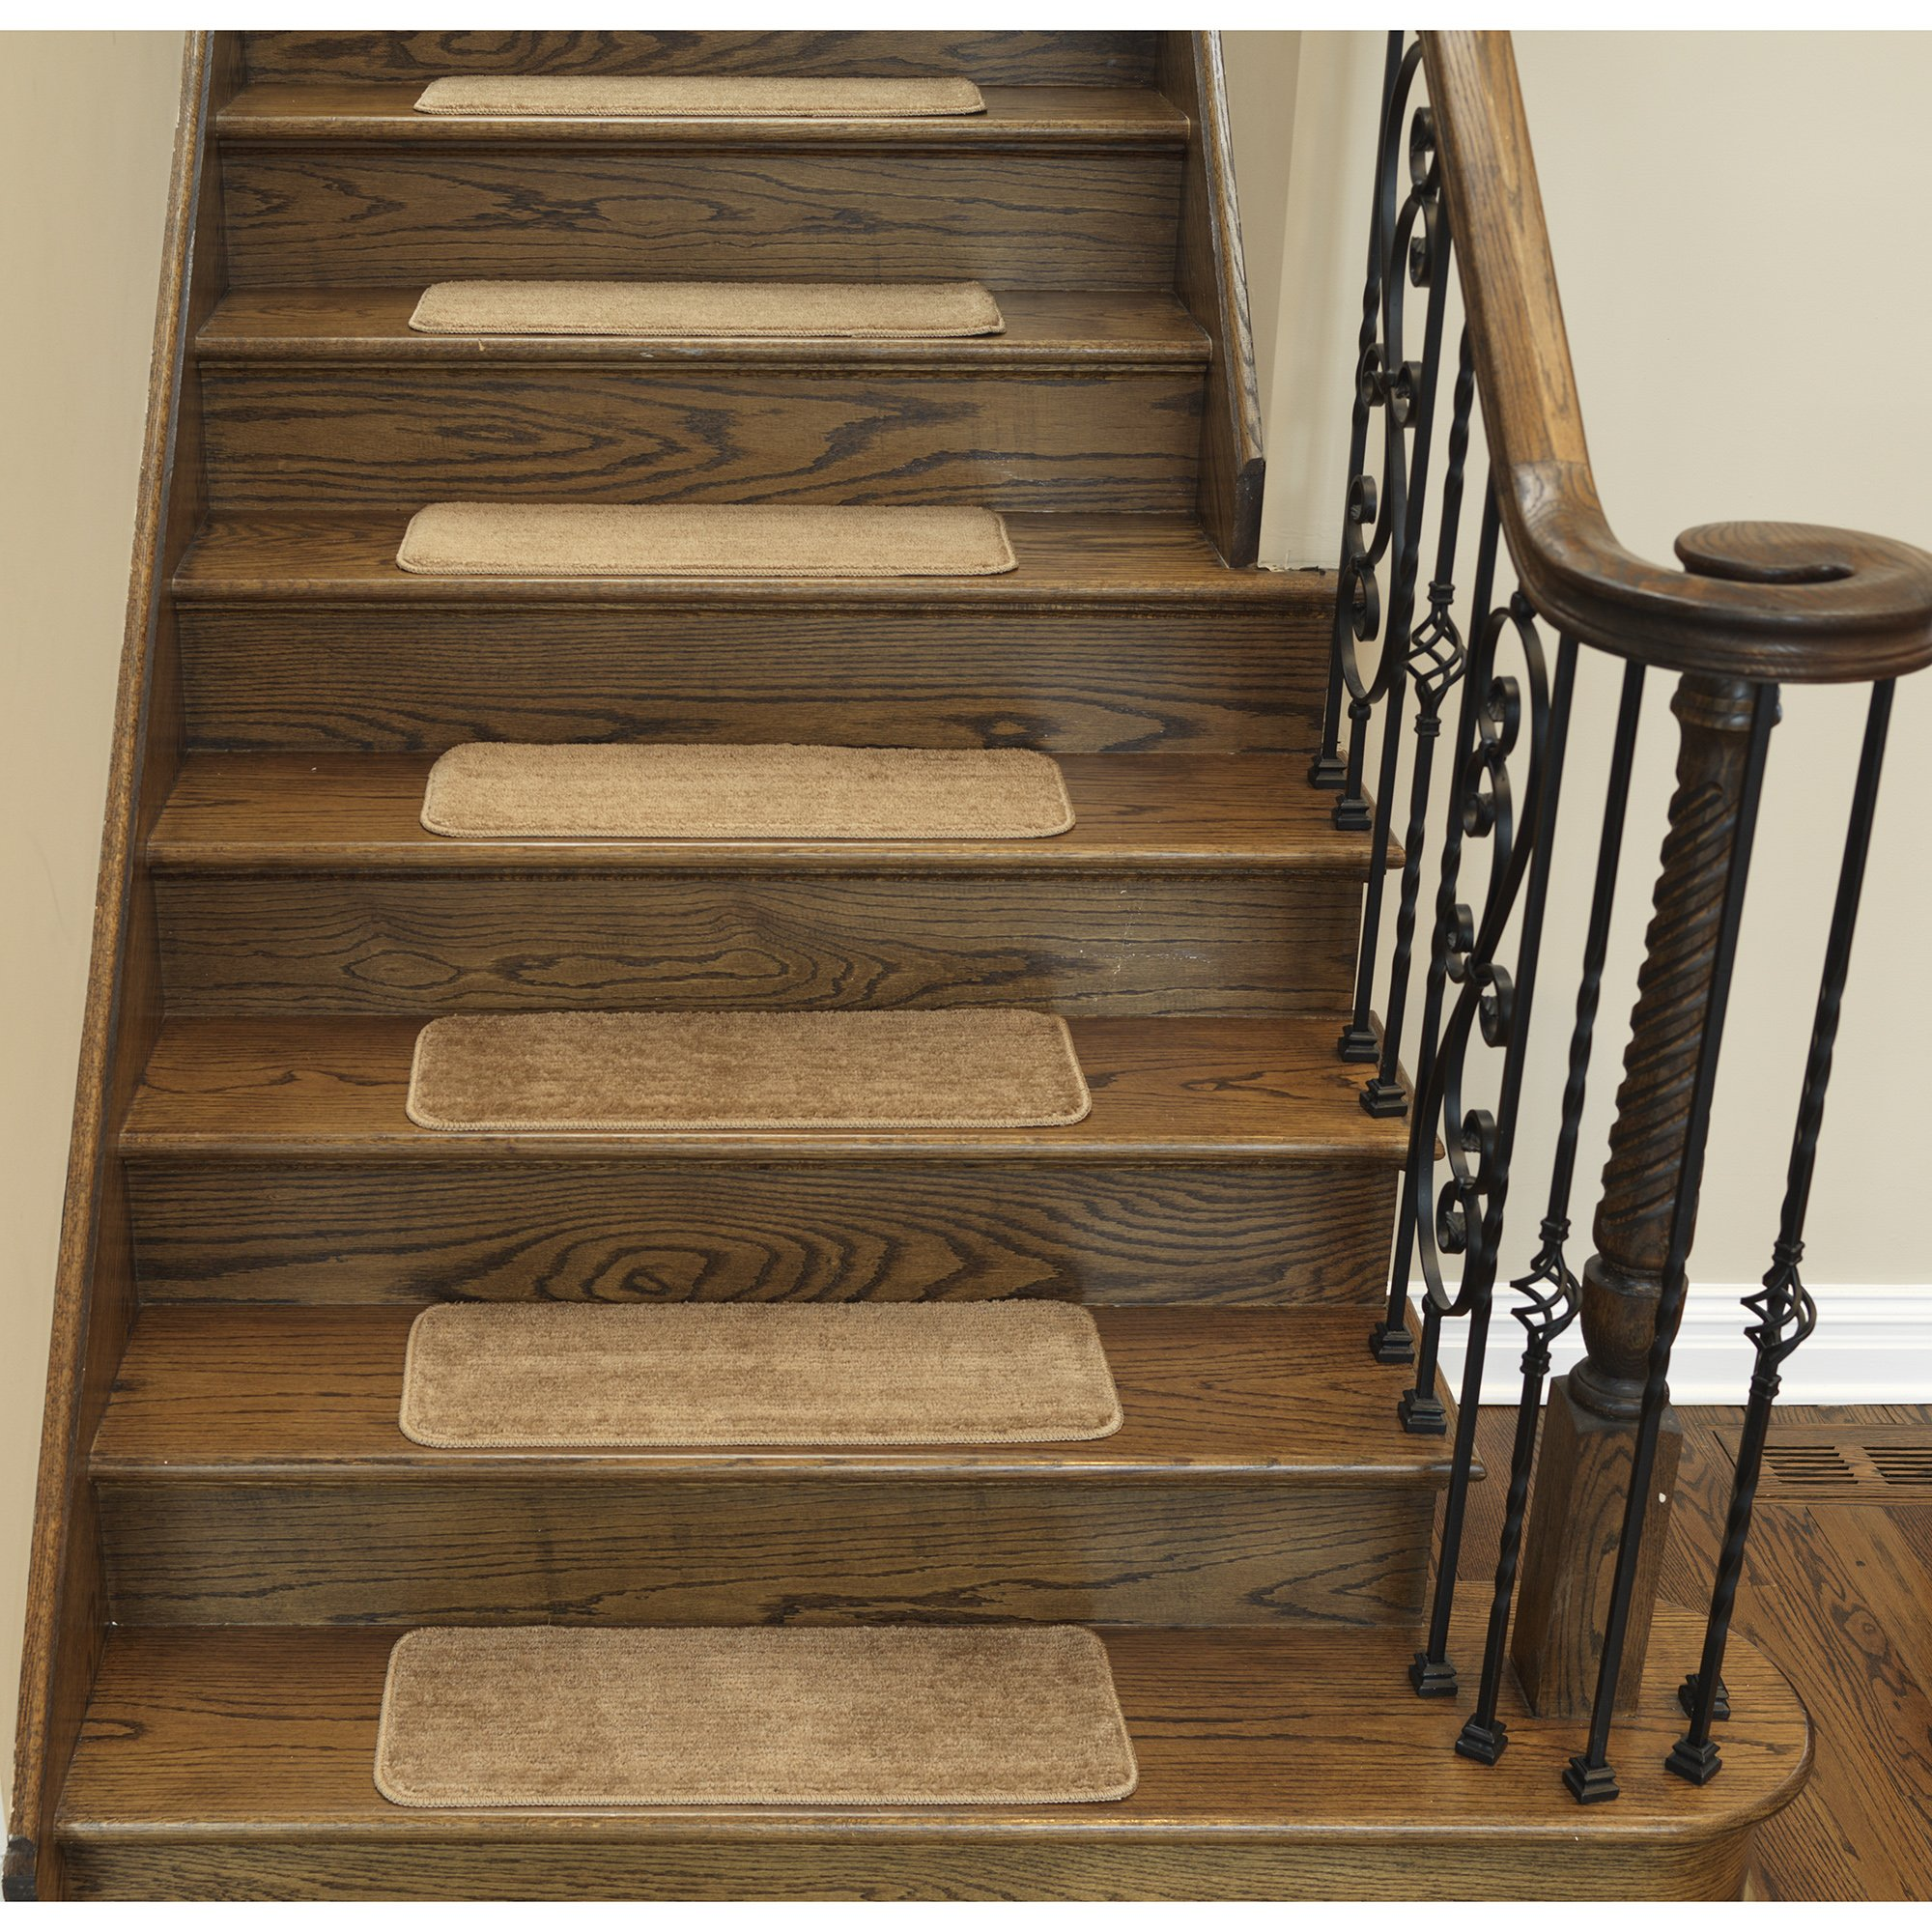 Ottomanson Softy Stair Treads Solid Beige Camel Hair, Skid Resistant Rubber Backing Non Slip Carpet 9'' L x 26'' W, Stair Tread Mats, Set of 7 by Ottomanson